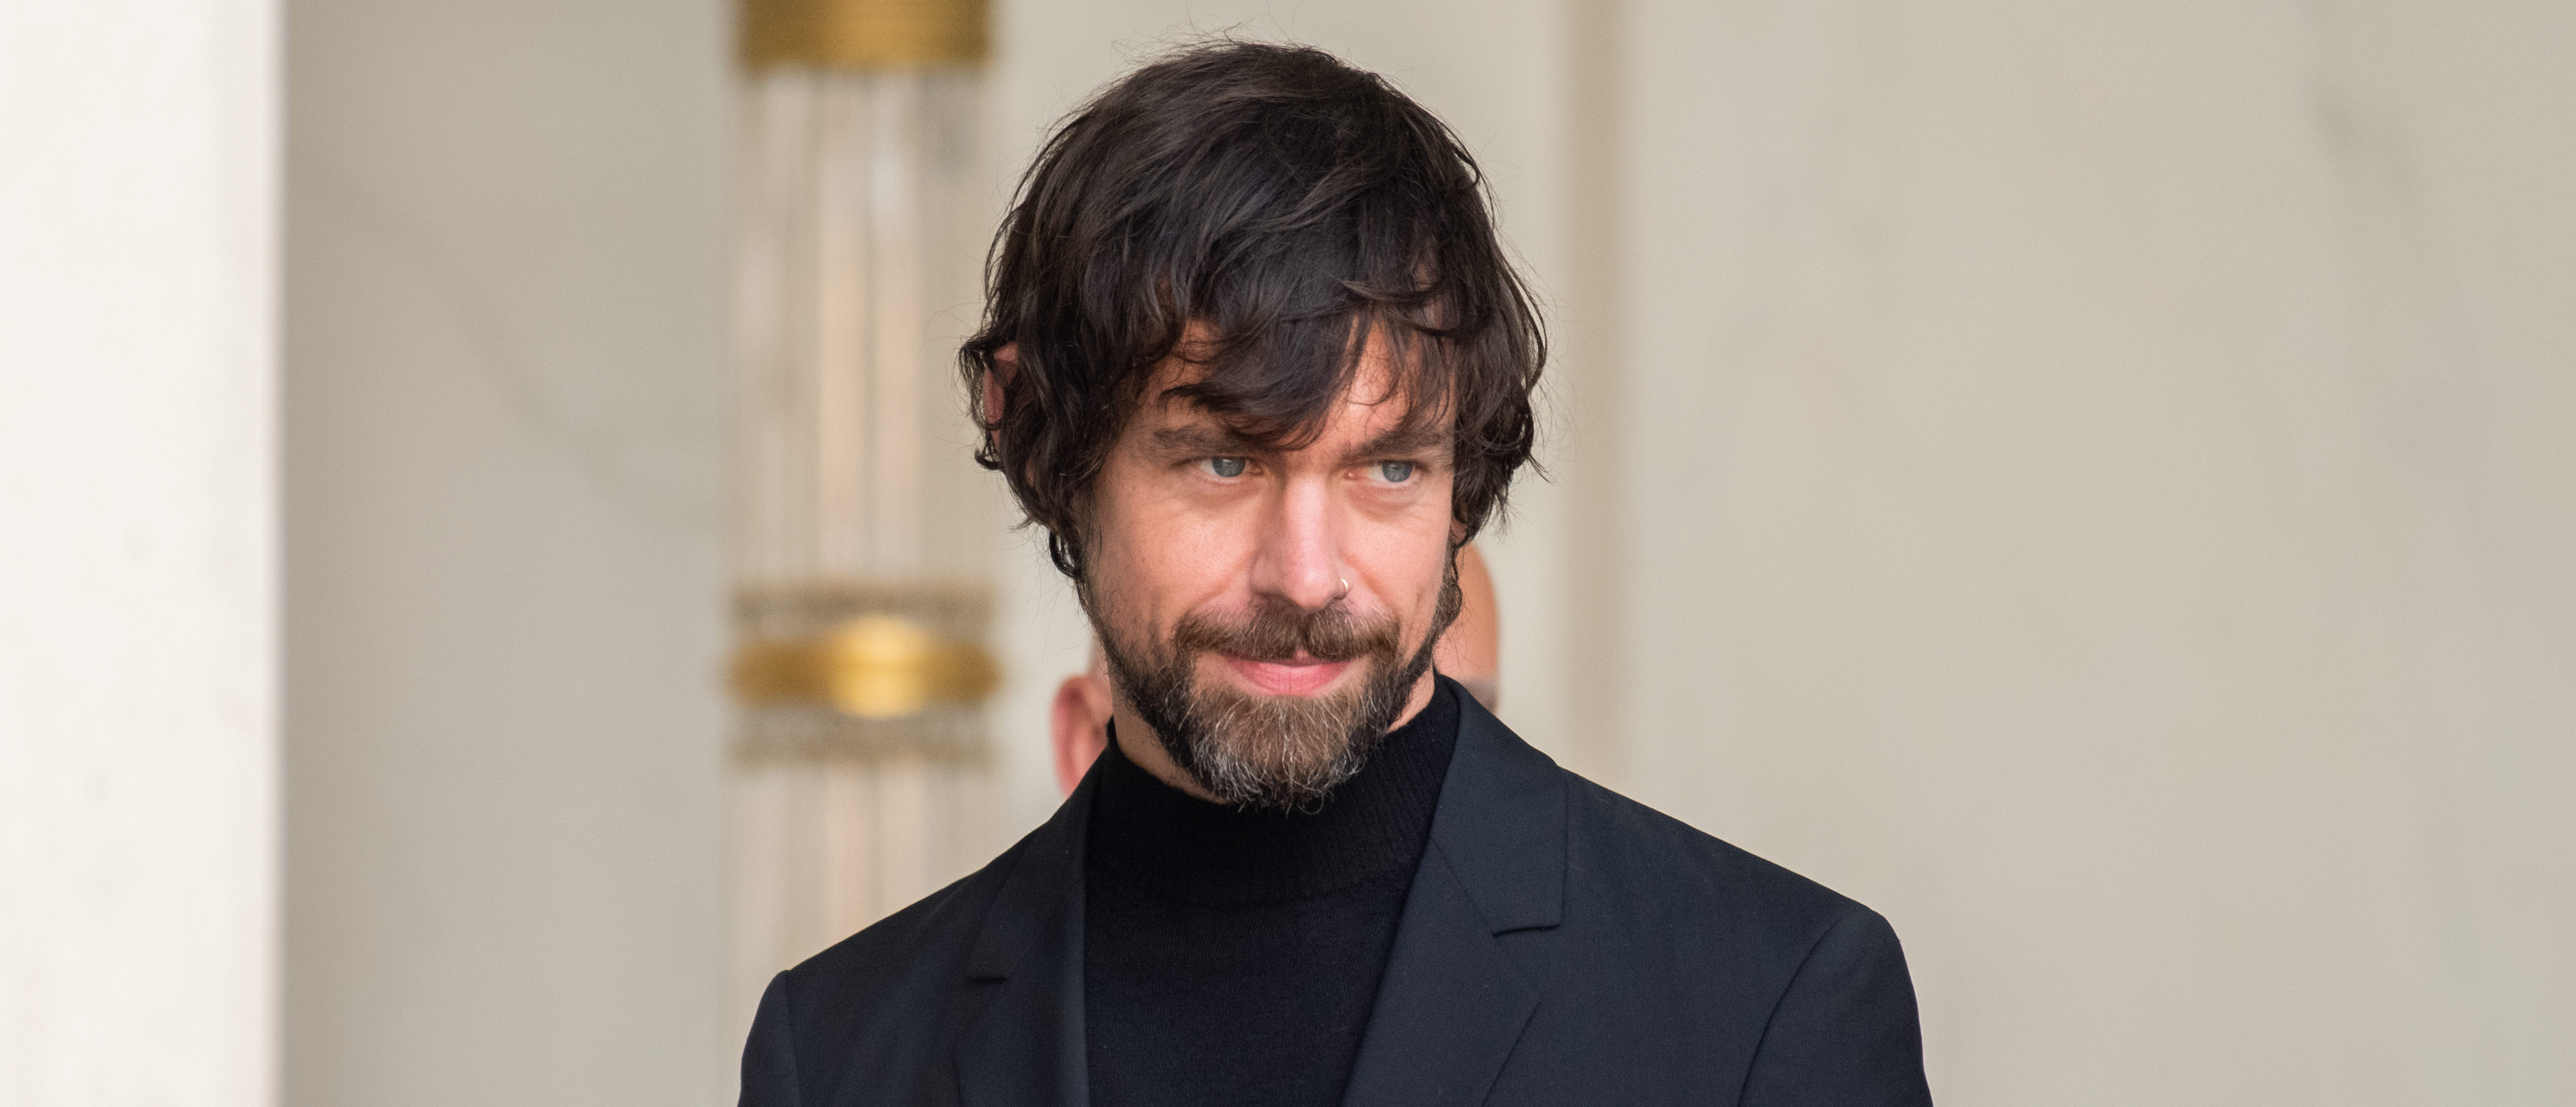 Twitter CEO Jack Dorsey is pictured. (Shutterstock/Frederic Legrand)